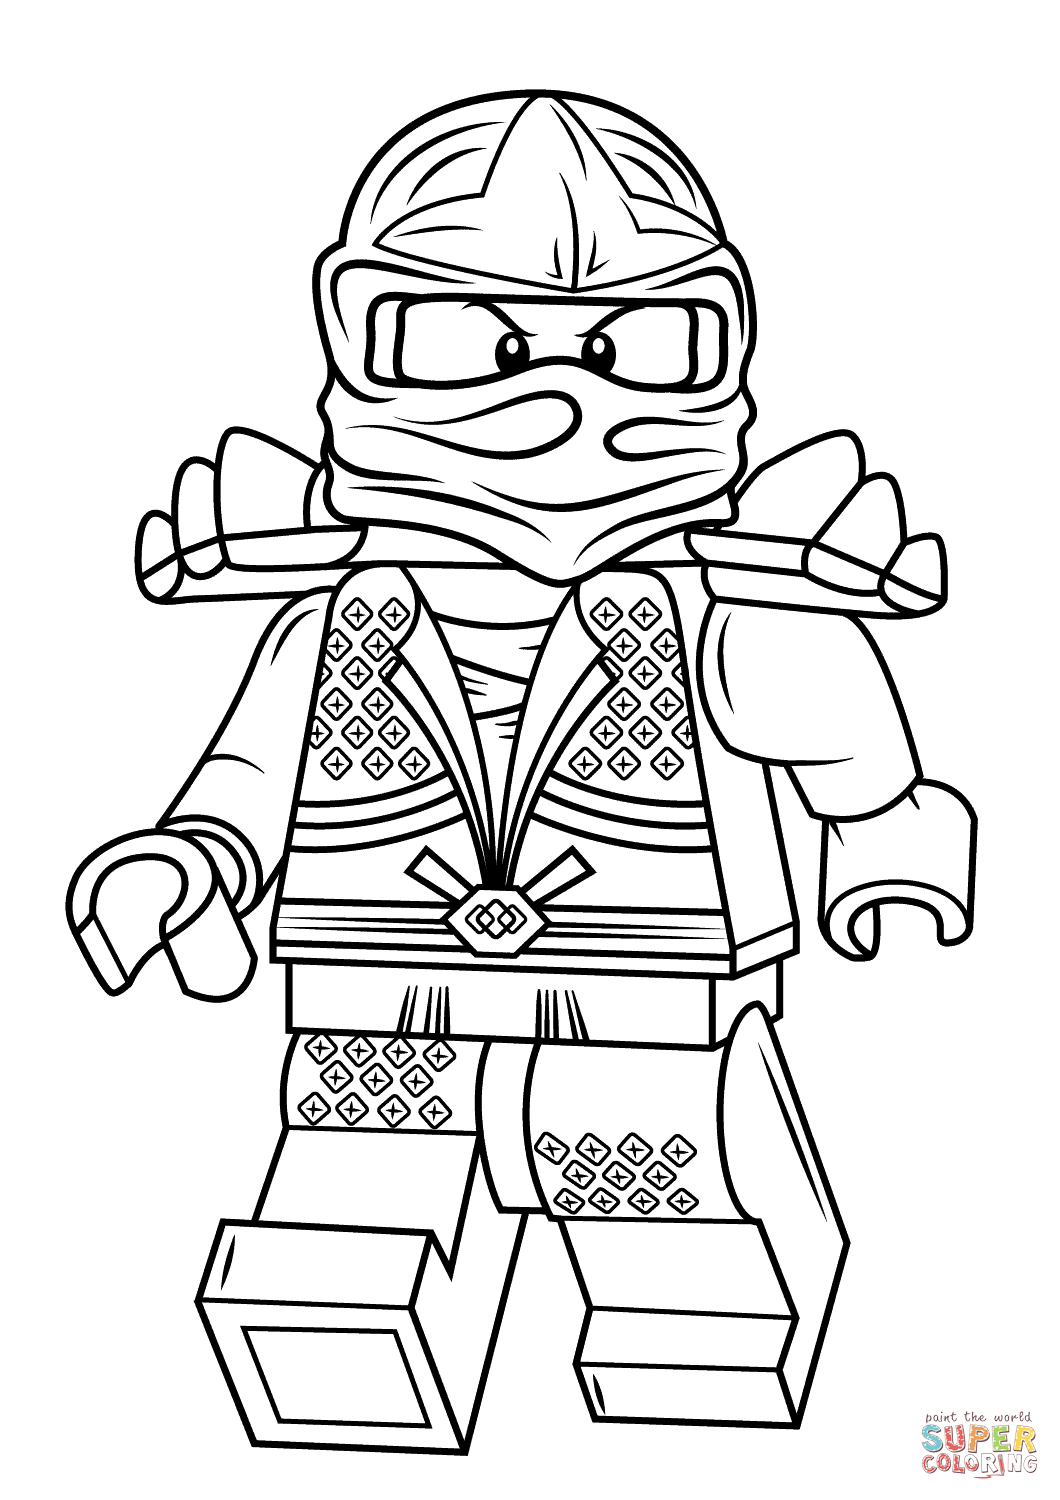 Lego Ninjago Drawing at GetDrawings.com | Free for personal use Lego ...